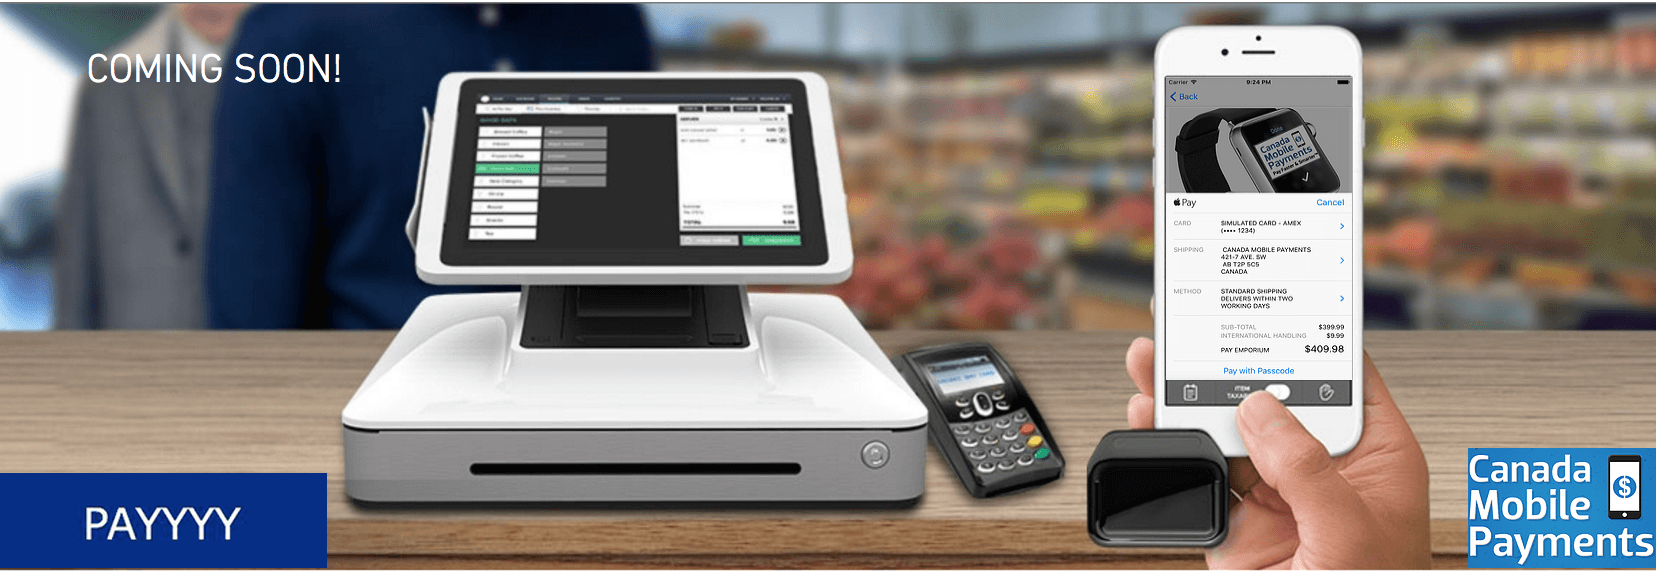 mobile payments merchant services - 1656×571